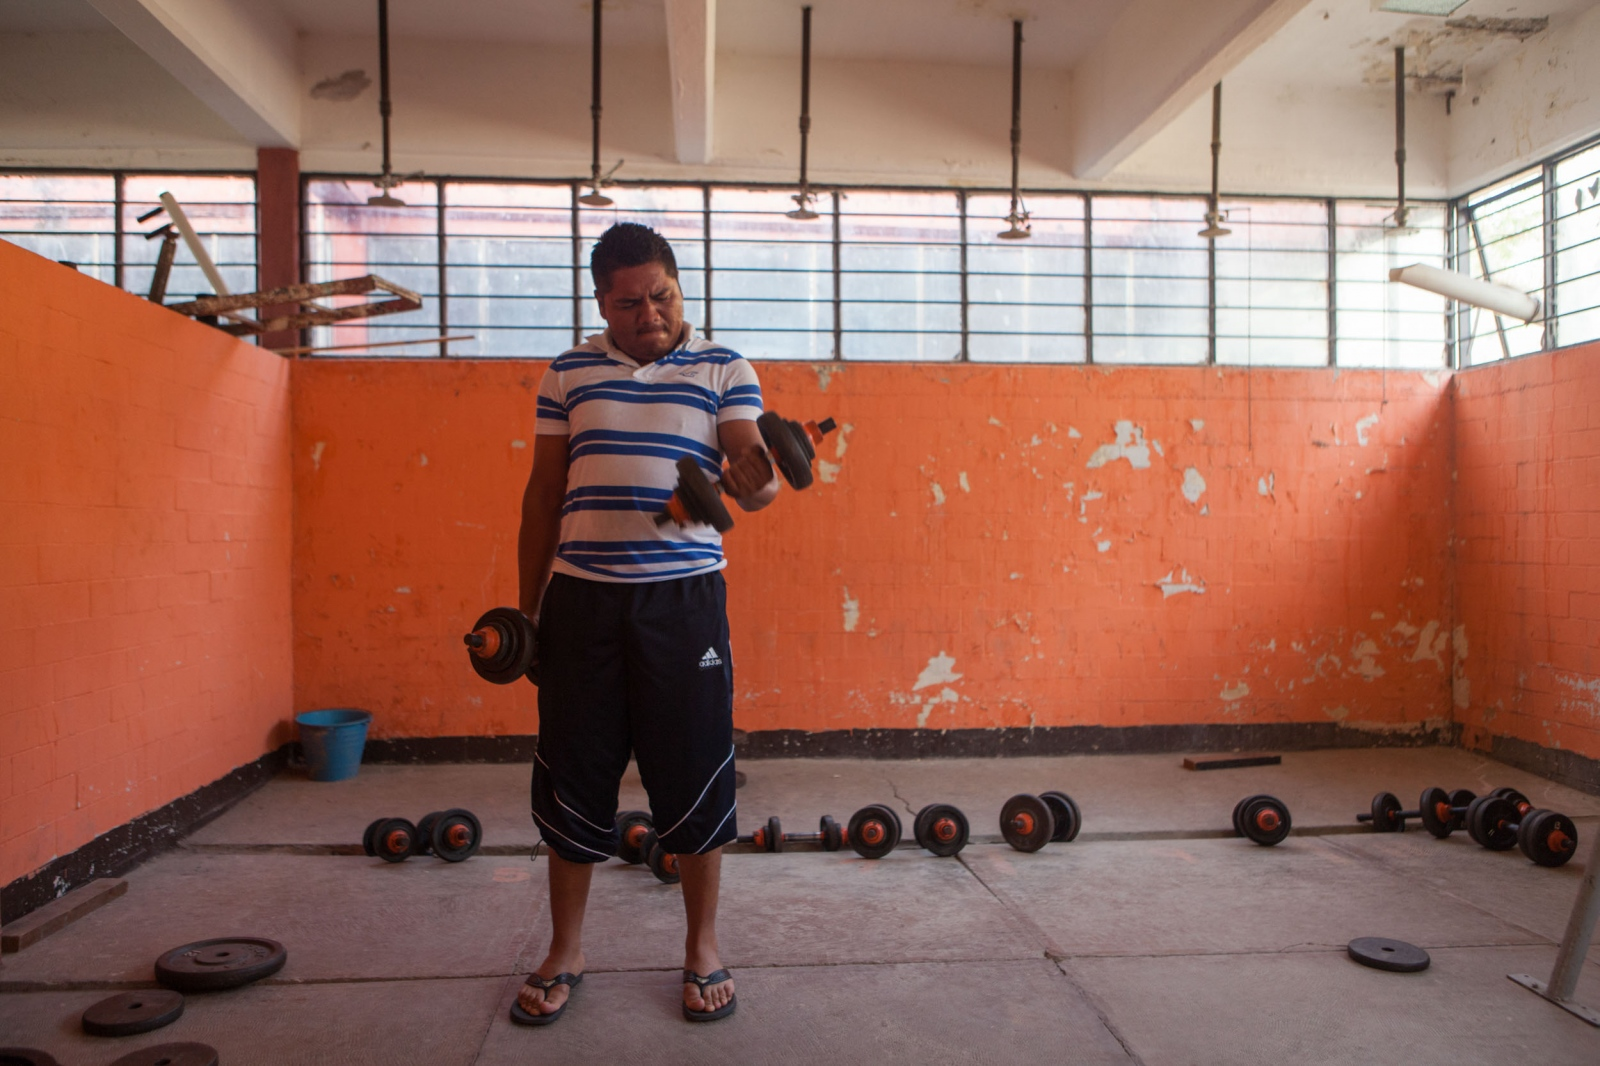 ·Tucui, as he is known by his school mates is a fourth year student who has taken advantage of the modest gym, training every morning, in the time that clases have been suspended. // · Tucui, como es conocido por sus compañeros, es alumno de cuarto año y ha aprovechado el tiempo en el que no ha podido tener clases para ejercitarse en el modesto gimnasio de la escuela.